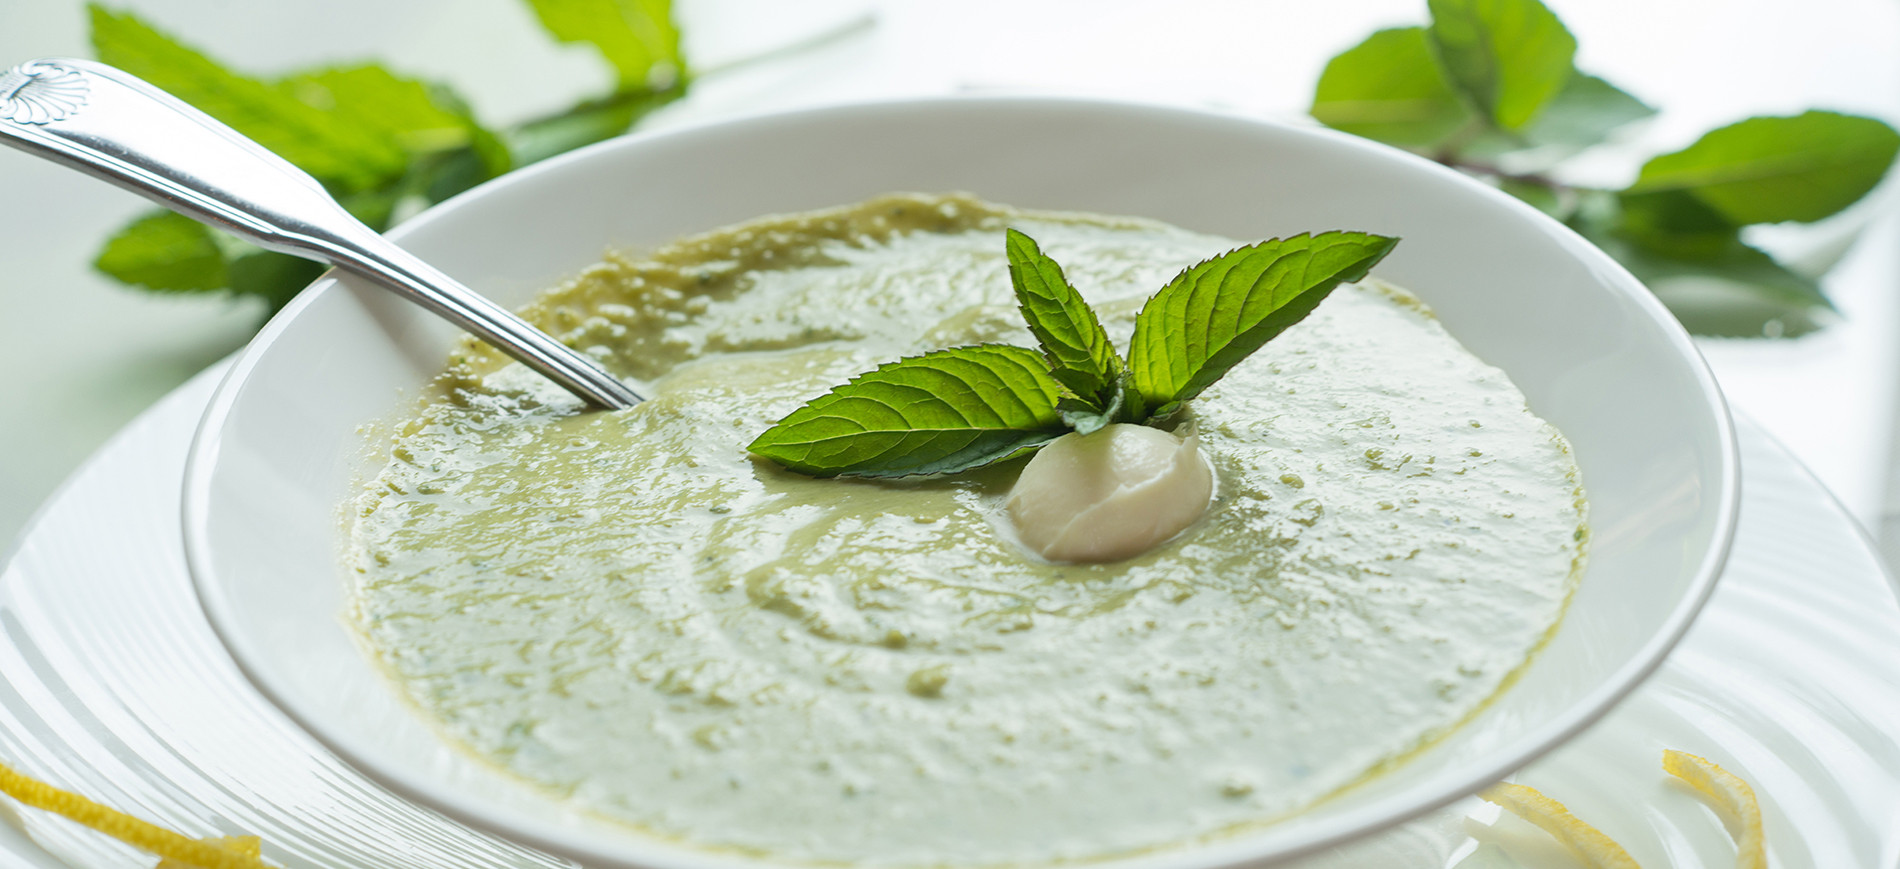 Minted pea soup with mint garnish in white bowl